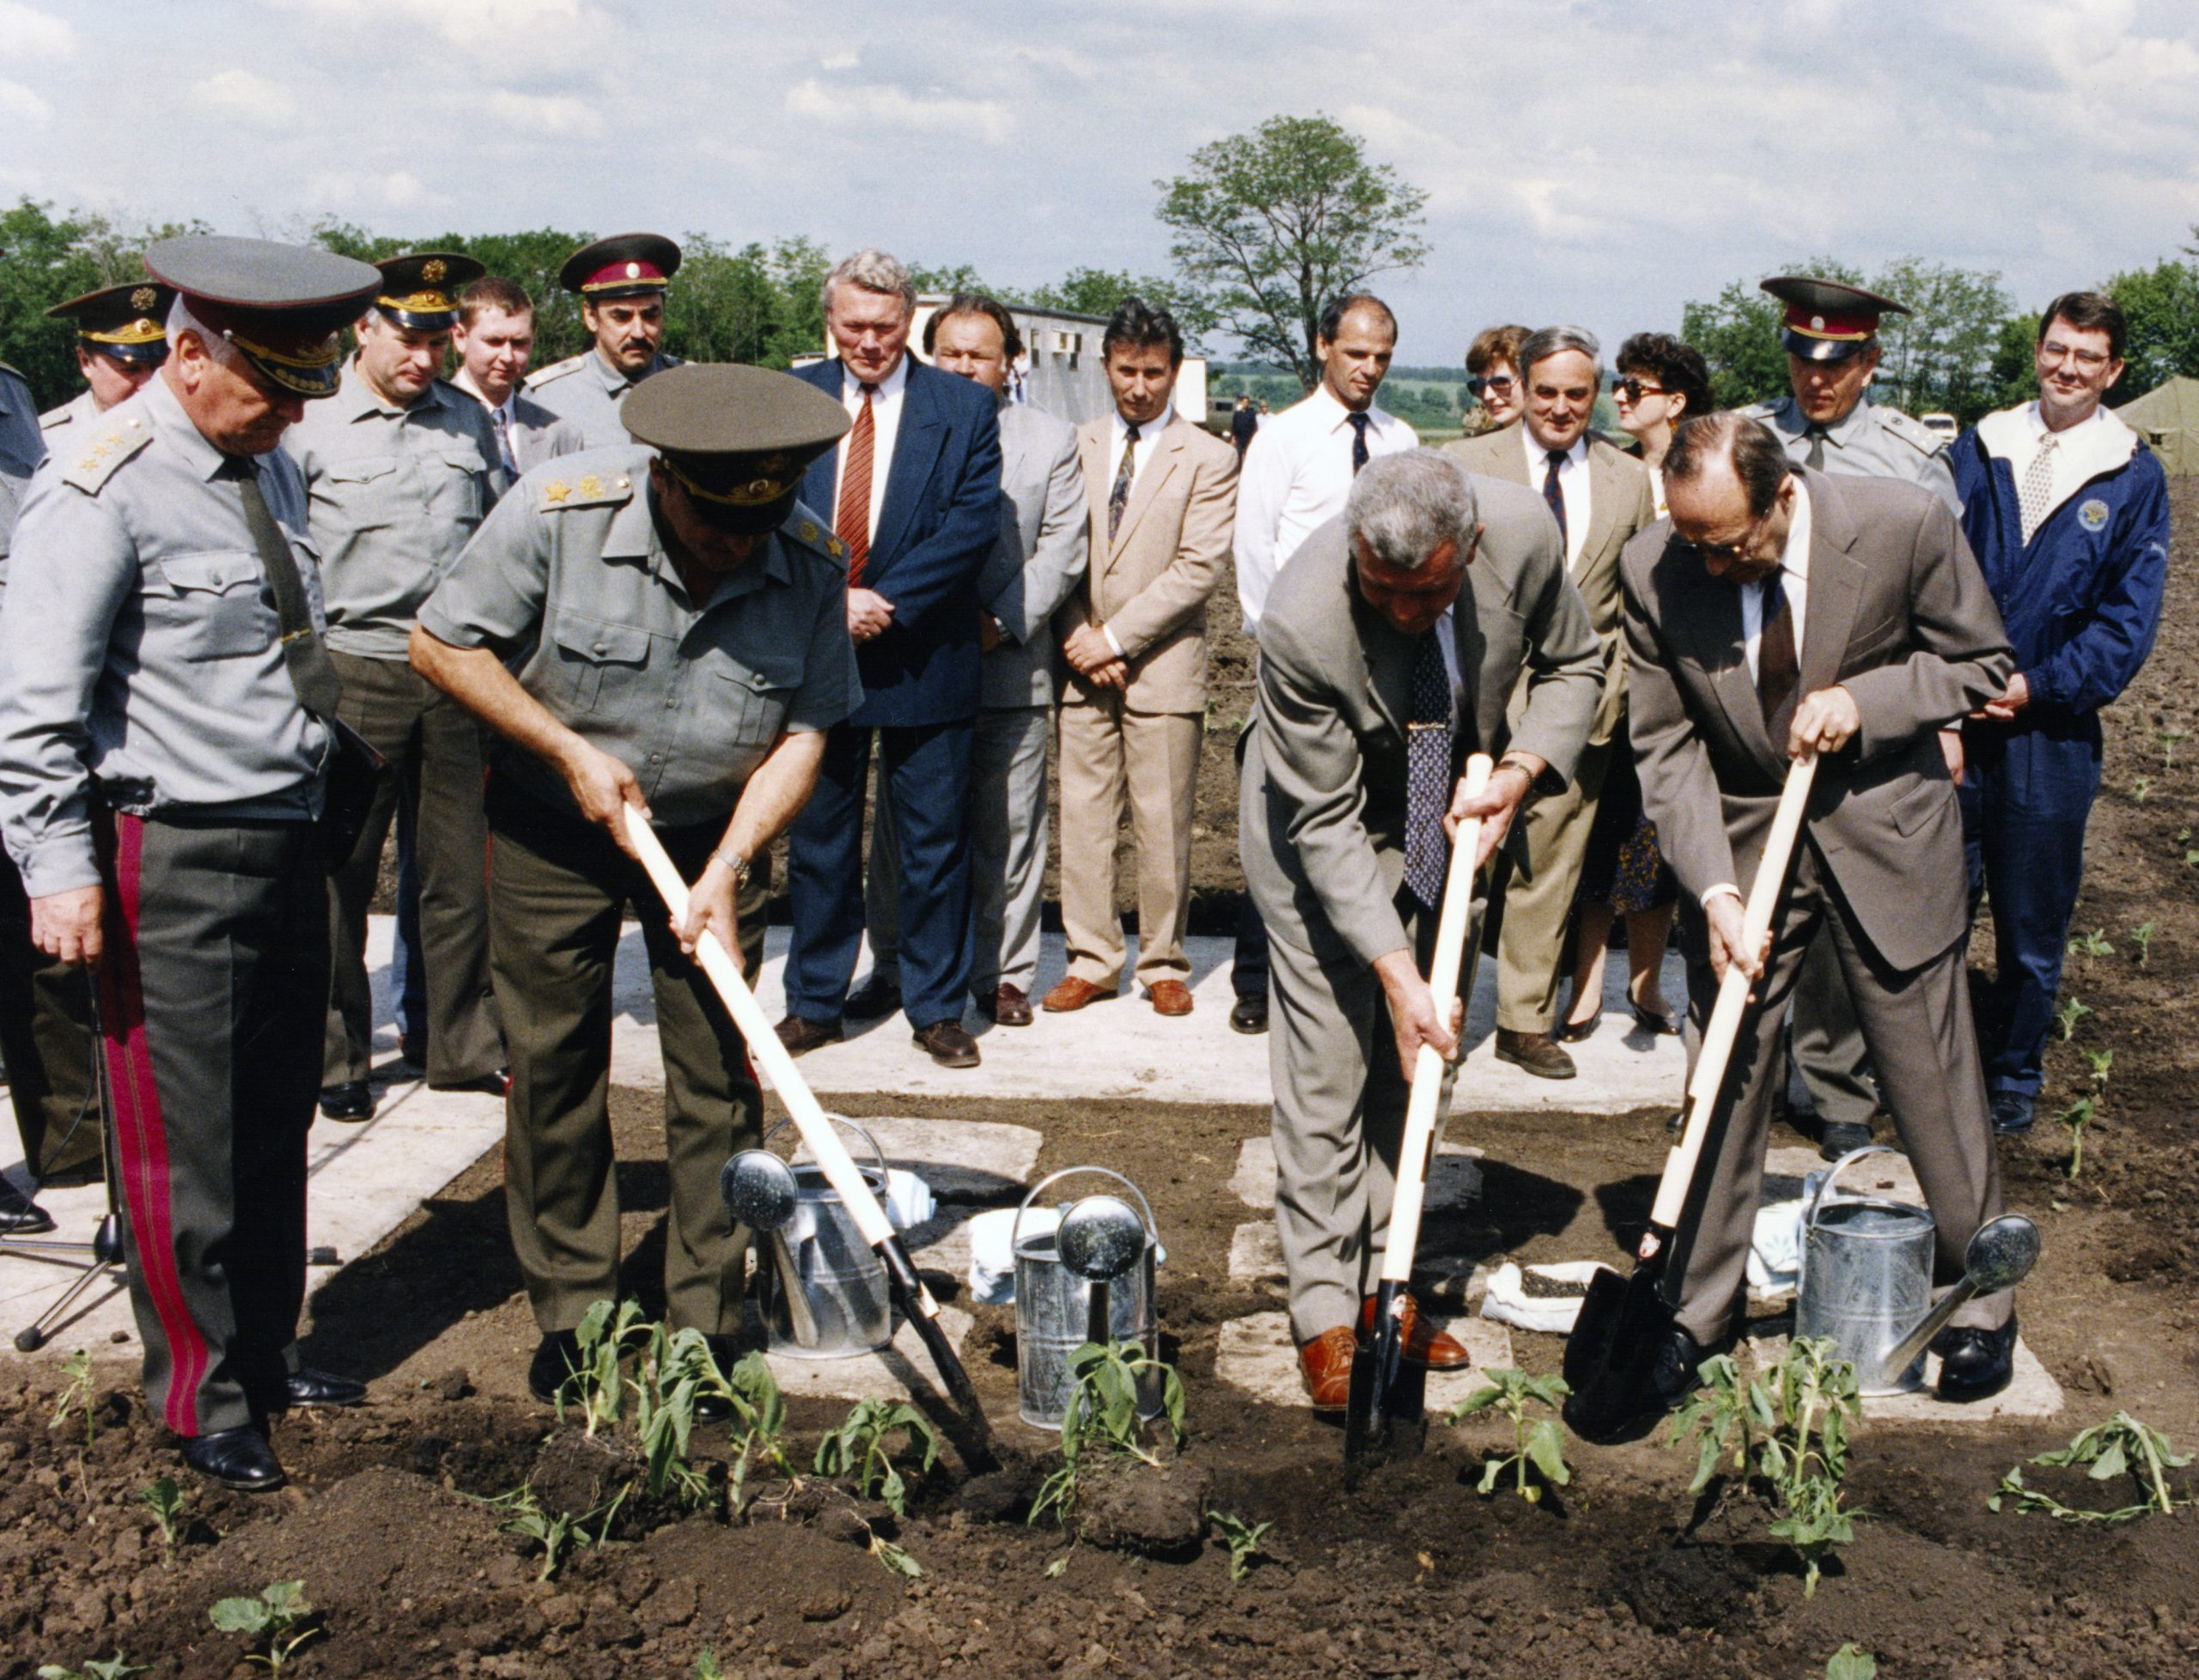 Planting sunflowers in former Soviet missile field (Perry, front right, Ash Carter, rear right)